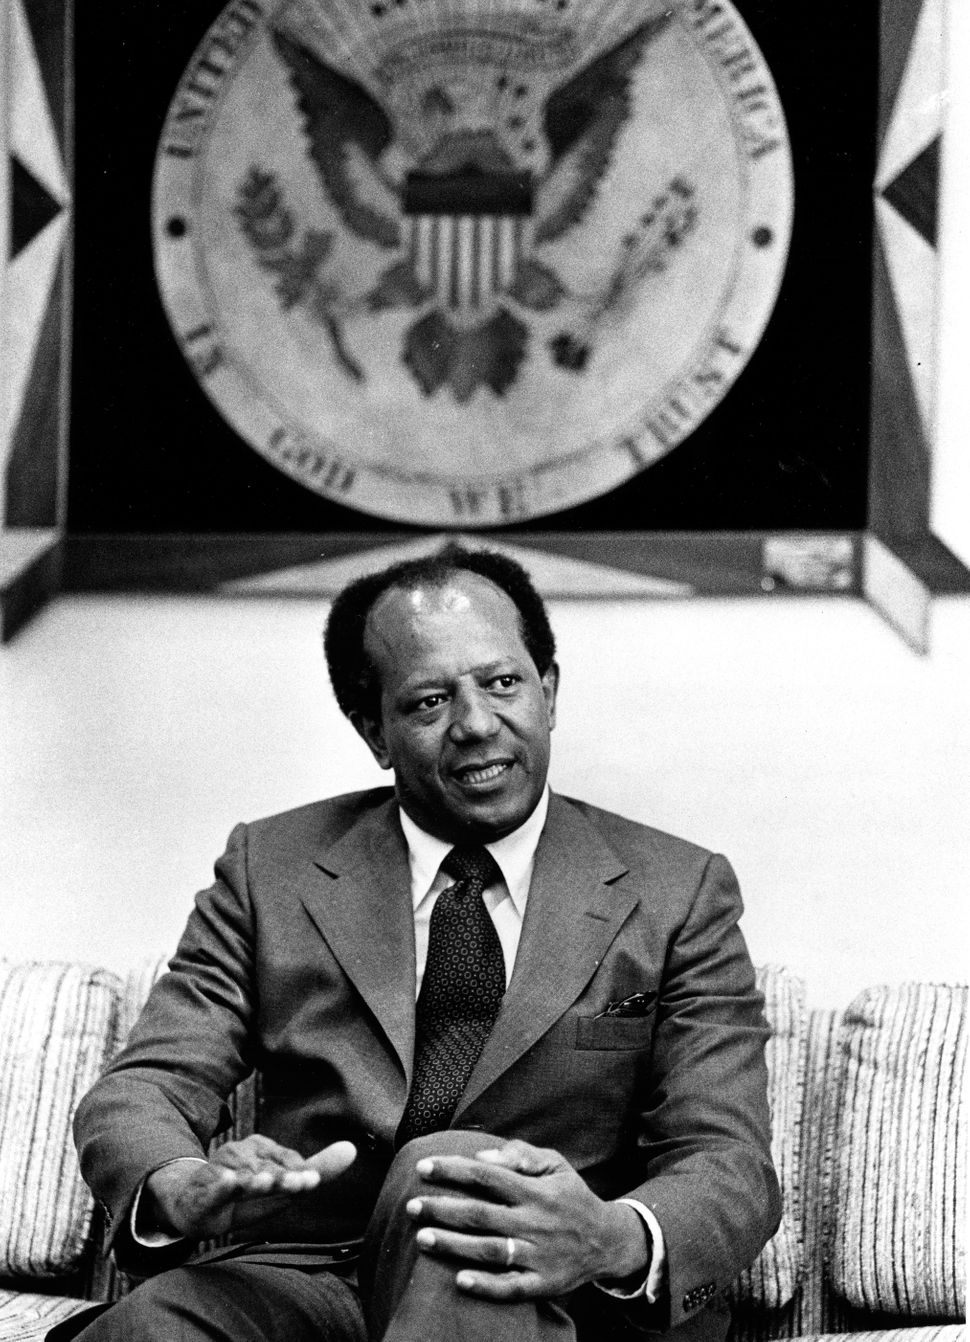 Terence Todman ultimately became the first Black person to head one of the State Department's geographic divisions.